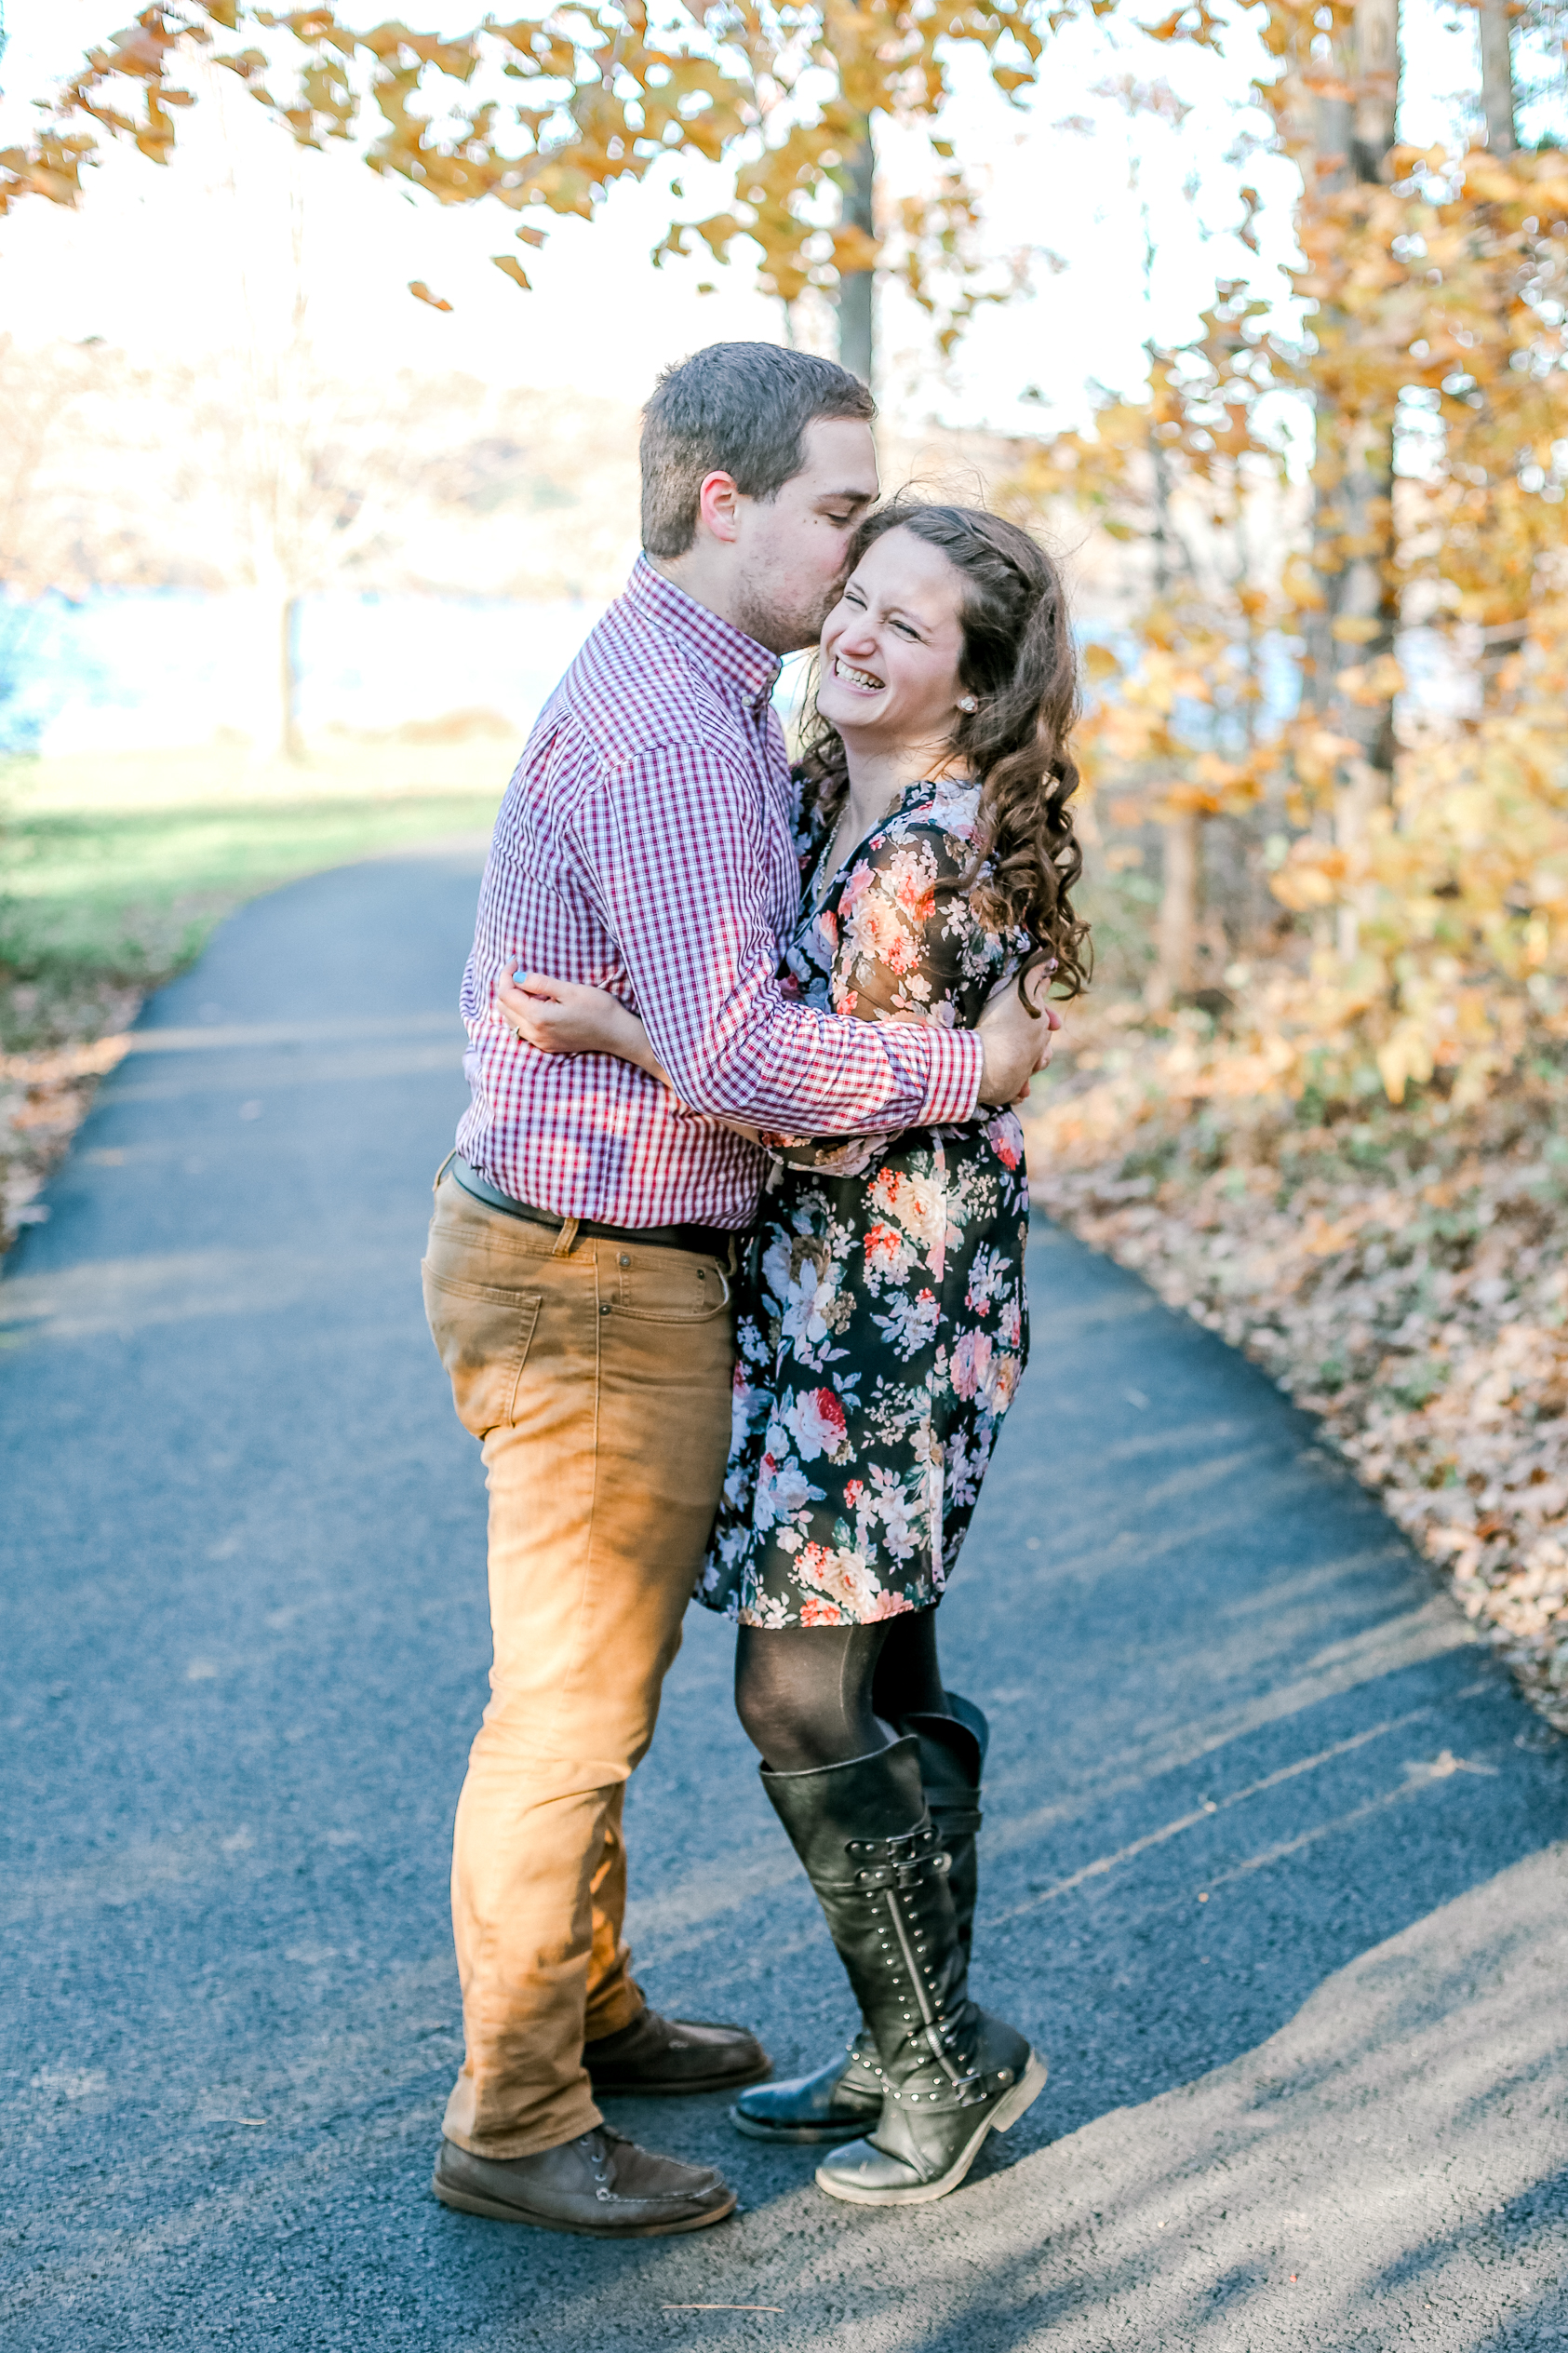 Bucks county Peace Valley Park Doylestown Lehigh Valley fall windy engagement session wedding and lifestyle photographer Lytle Photo Co (26 of 109).jpg